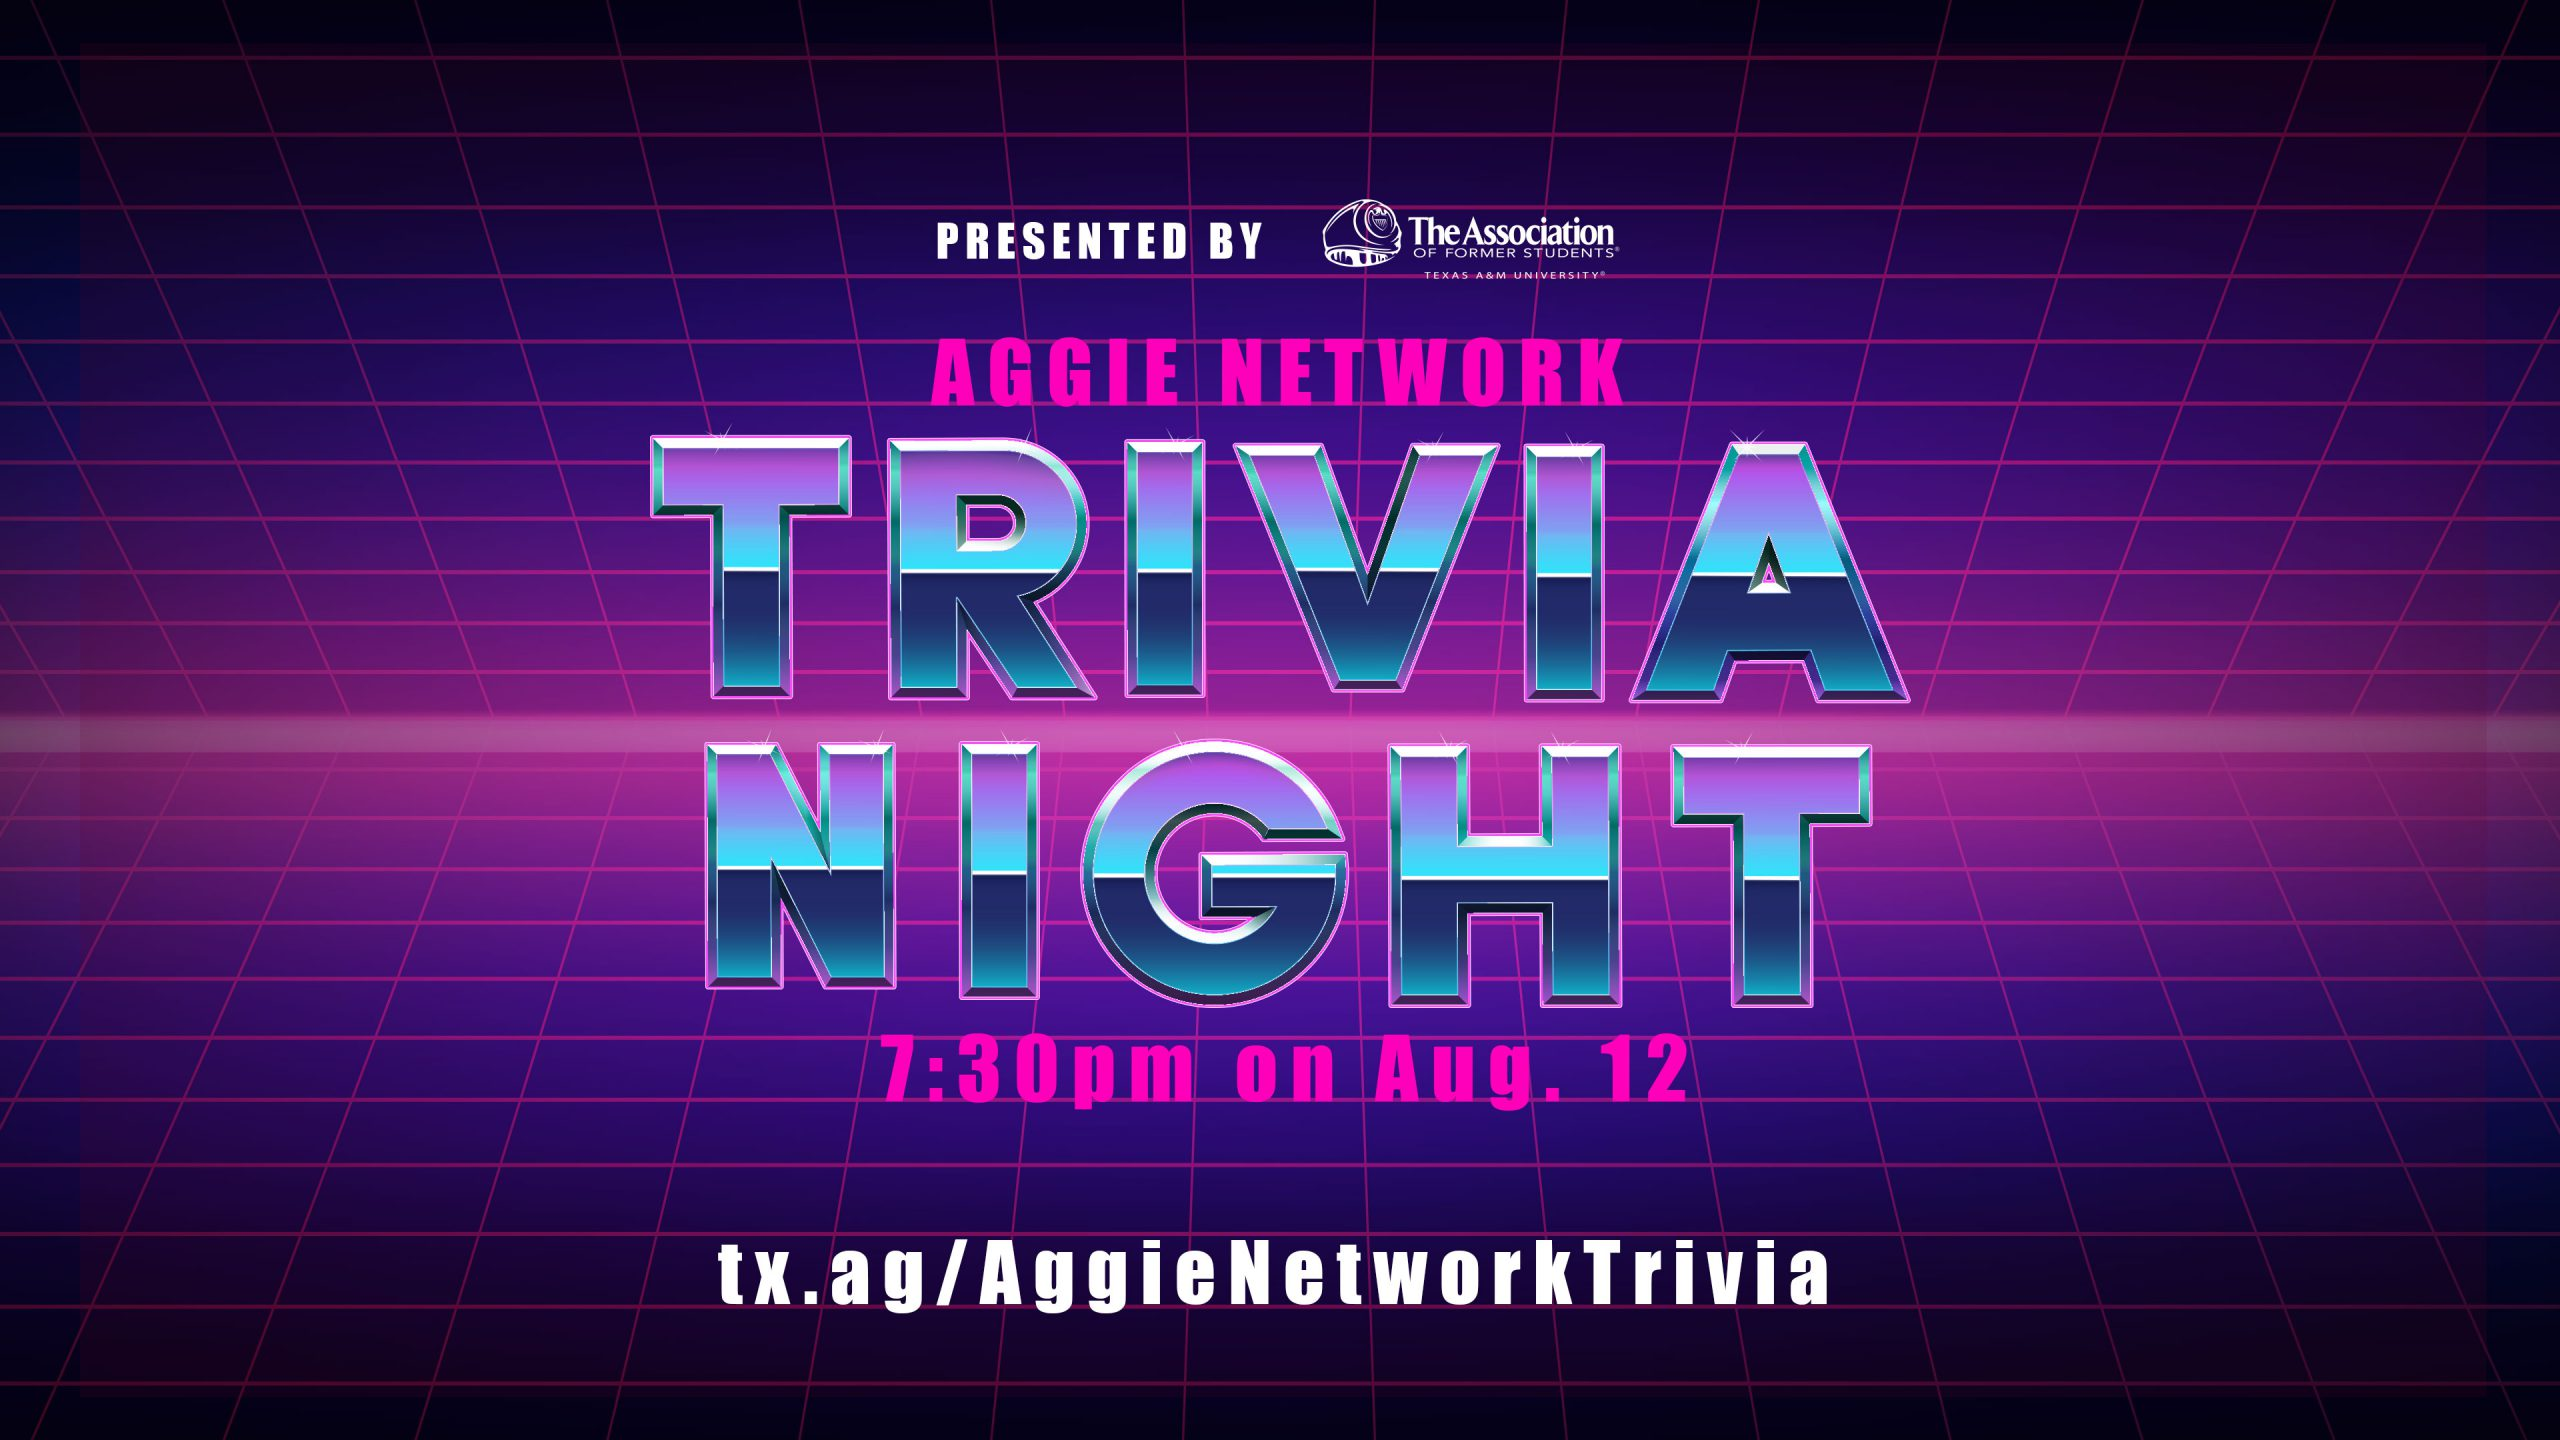 Aggie Network Trivia Night graphic